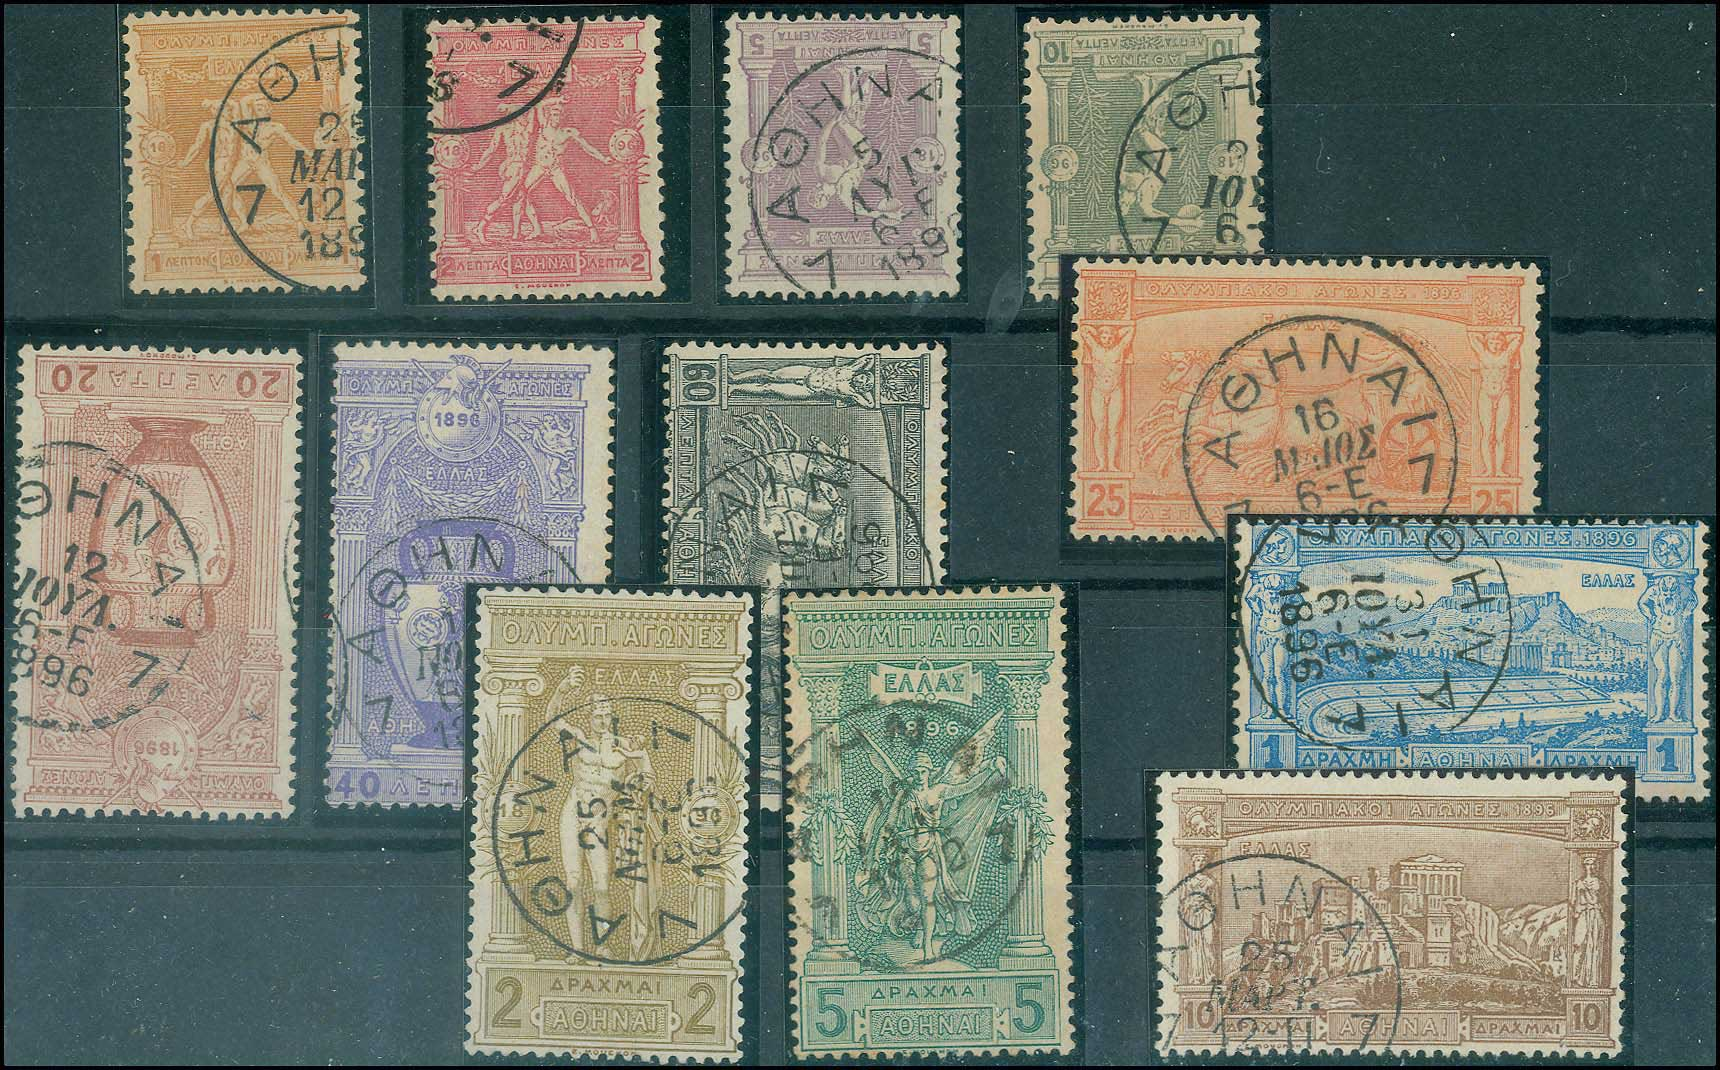 Lot 348 - 1896 first olympic games 1896 first olympic games -  A. Karamitsos Postal & Live Internet Auction 680 General Philatelic Auction